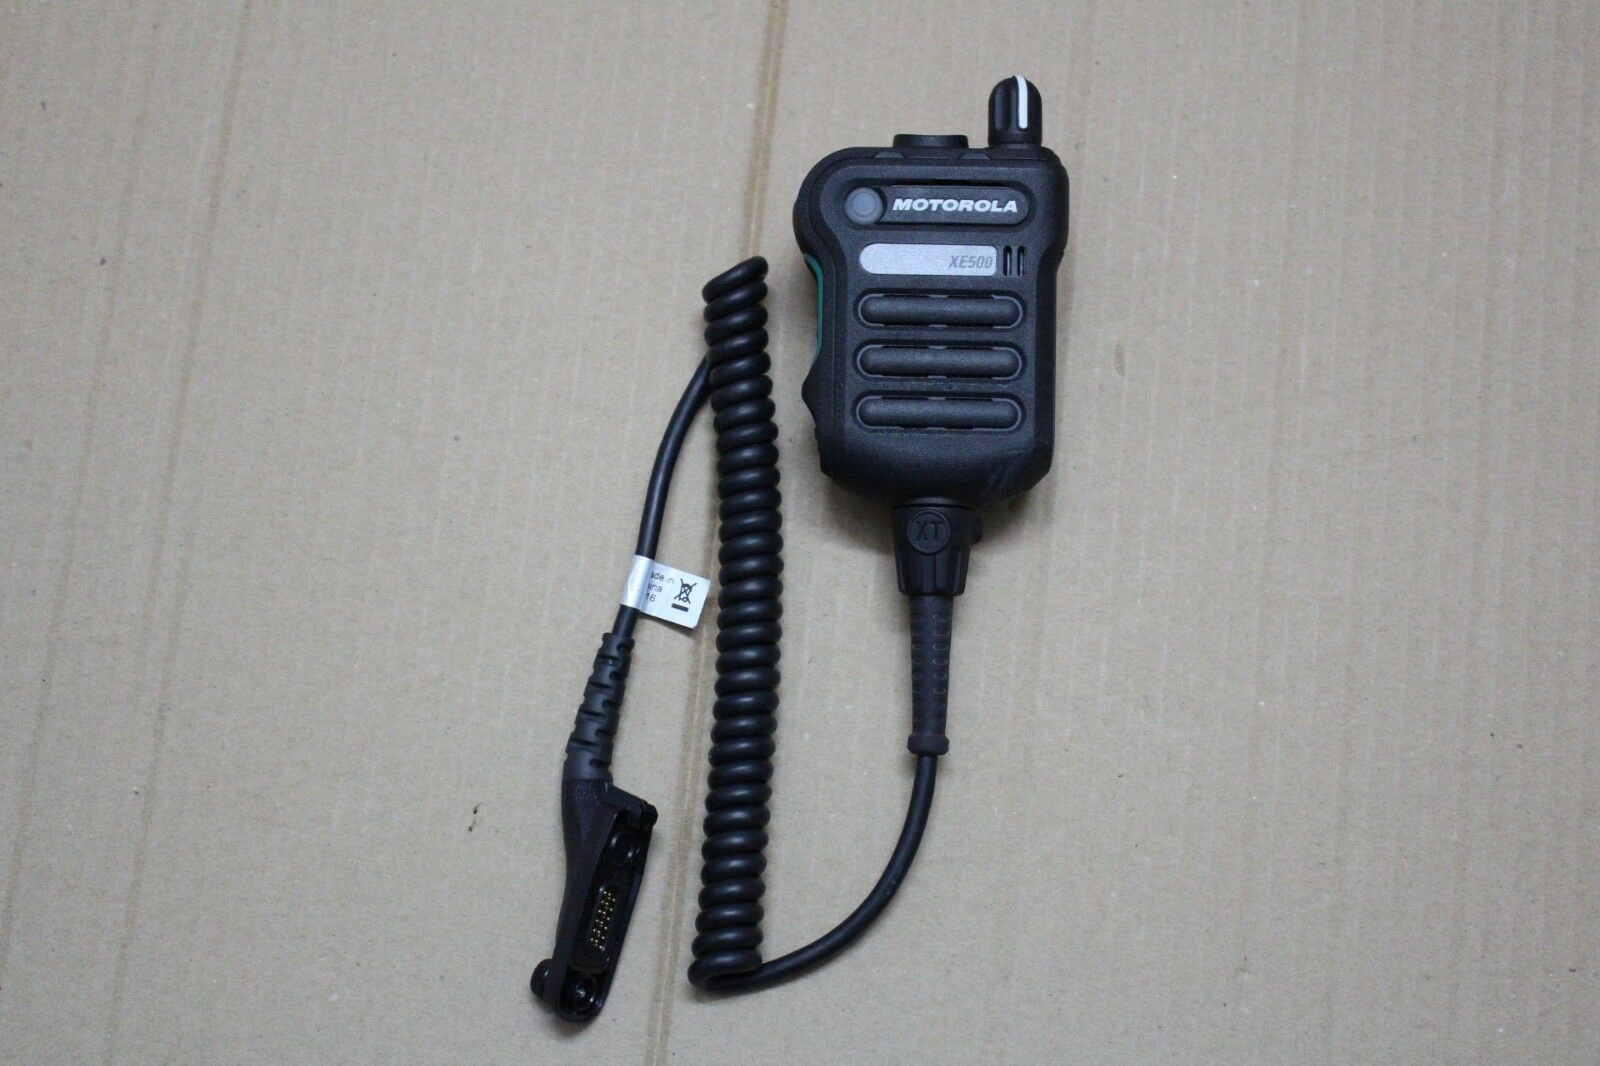 Motorola APX7000 APX8000 PMMN4106A XE500 Extreme Remote Speaker Mic - BLACK. Buy it now for 288.00